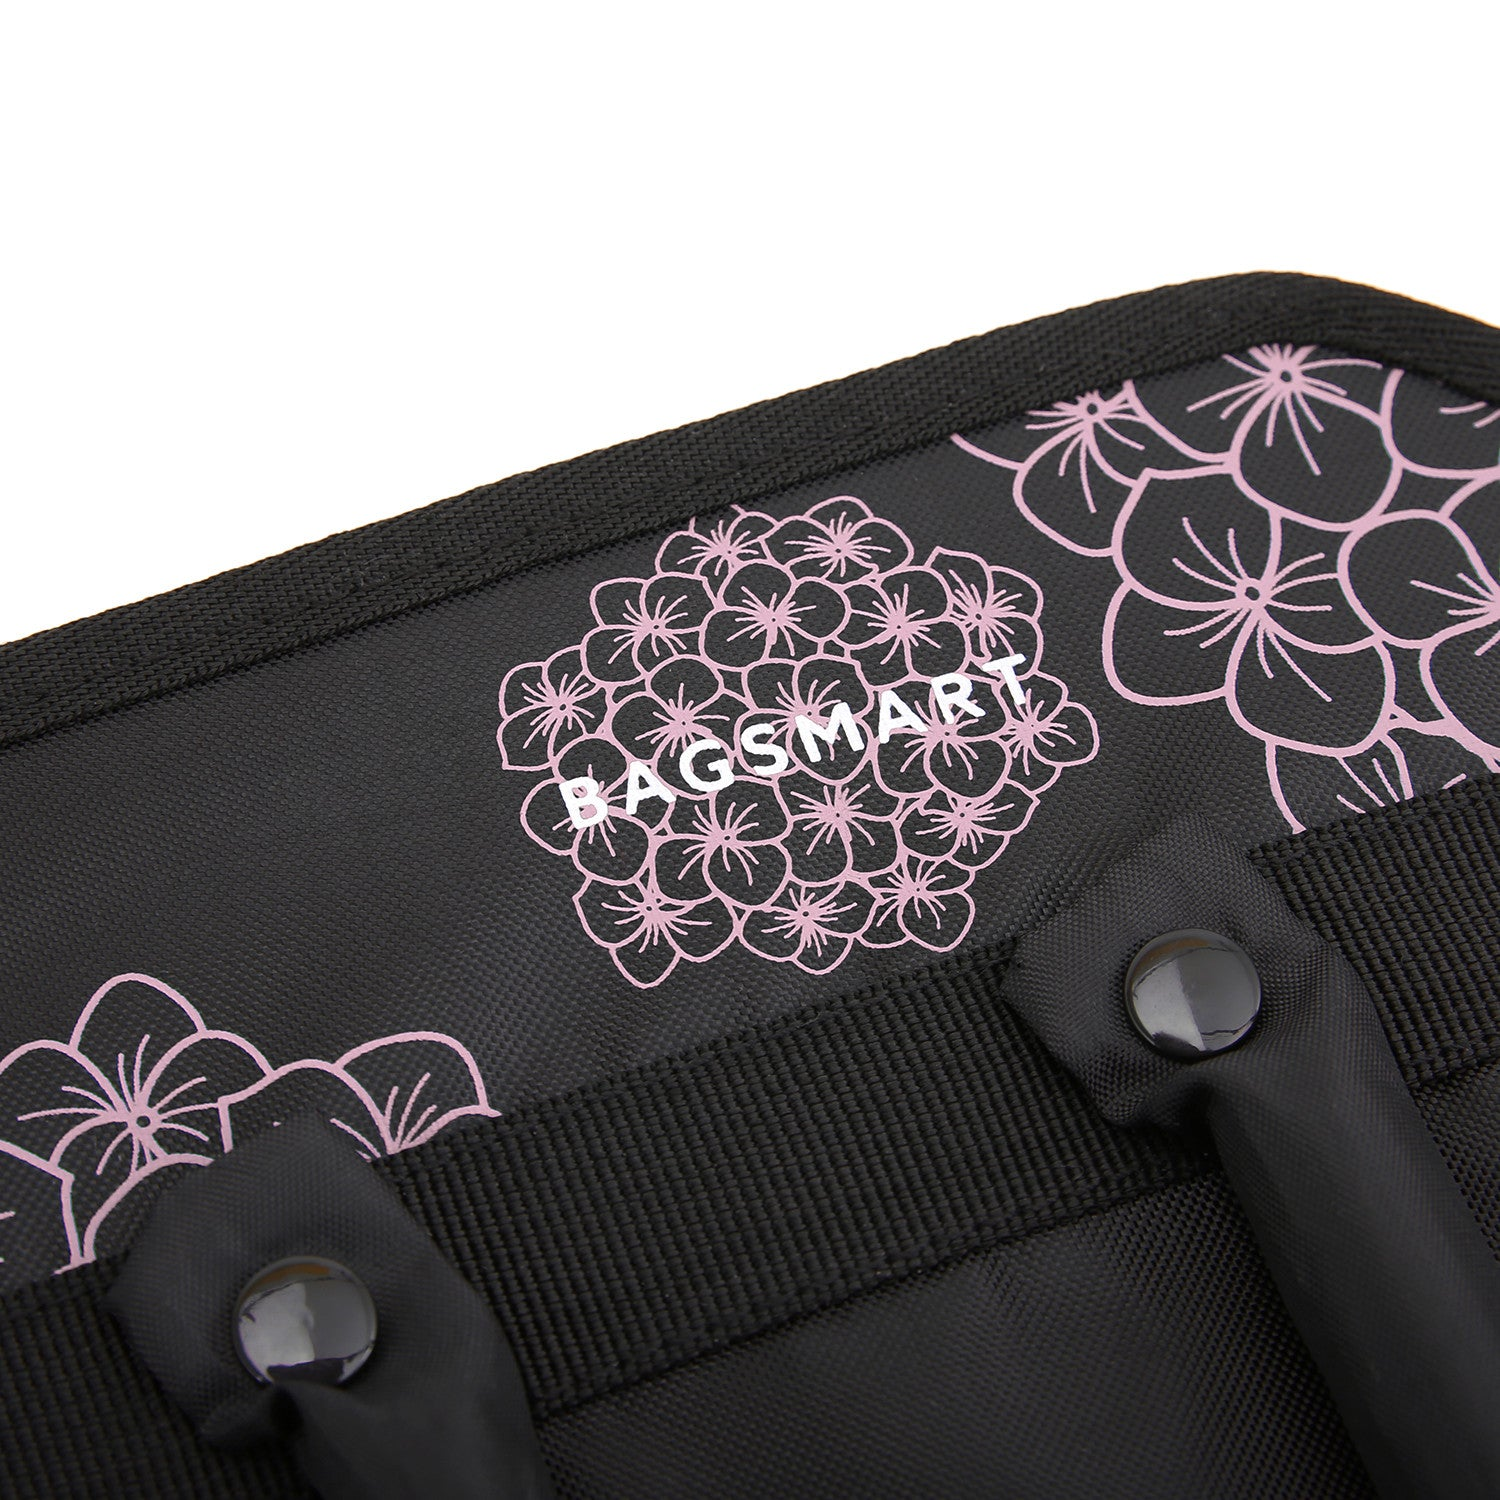 The BAGSMART Rolling Jewelry Bag (2 Colors) - I Have Wanderlust